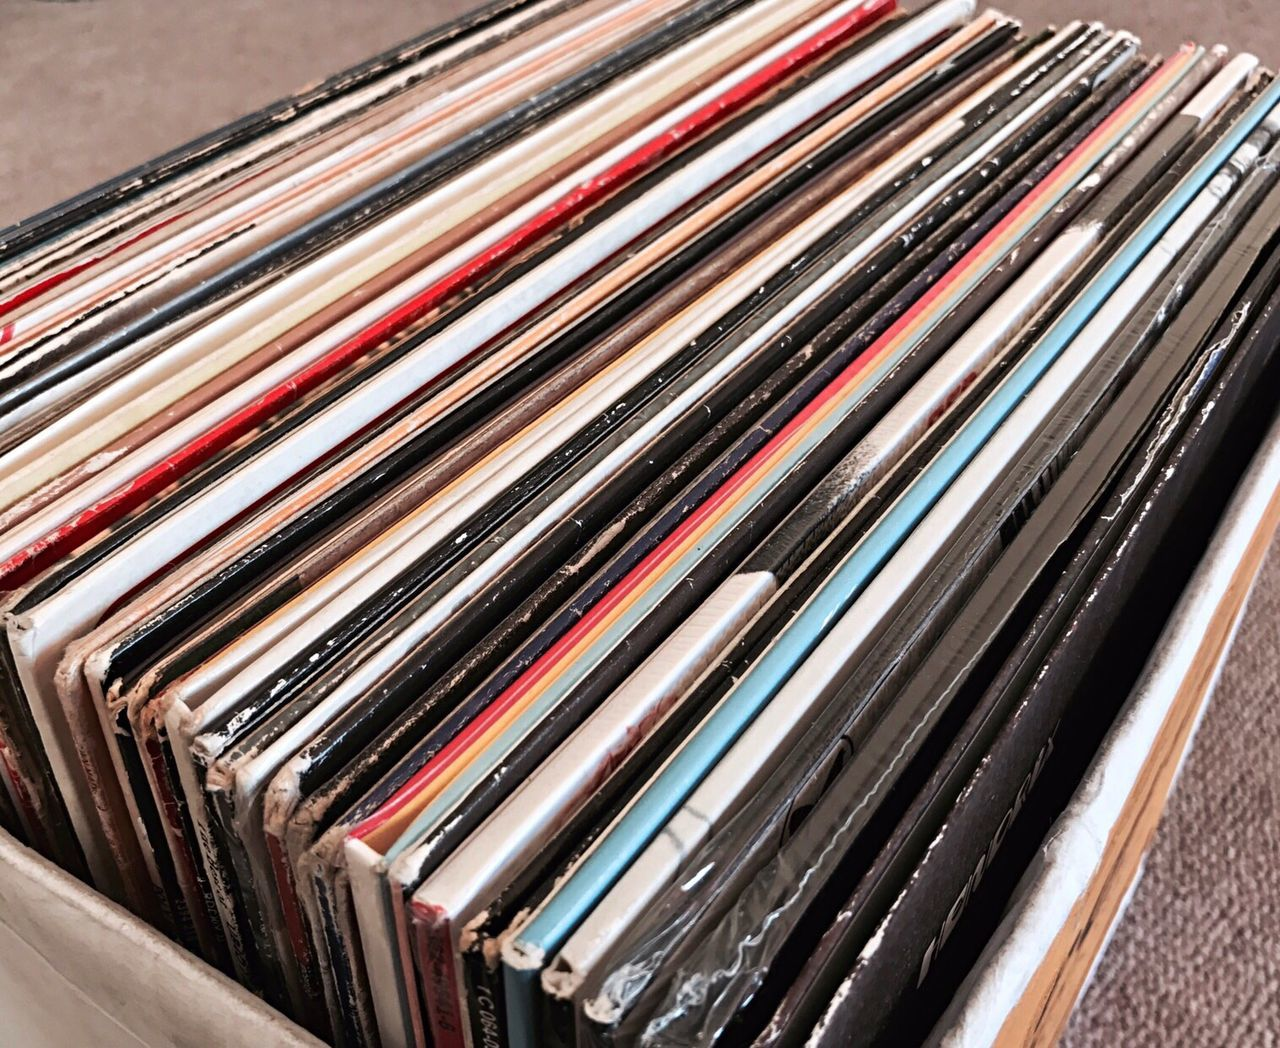 Modern record collection. Records Vinyl Vinyl Records Vinylcollector Collection Music Audio Retro Large Group Of Objects Backgrounds Stack No People Indoors  Close-up Archives Day (null)